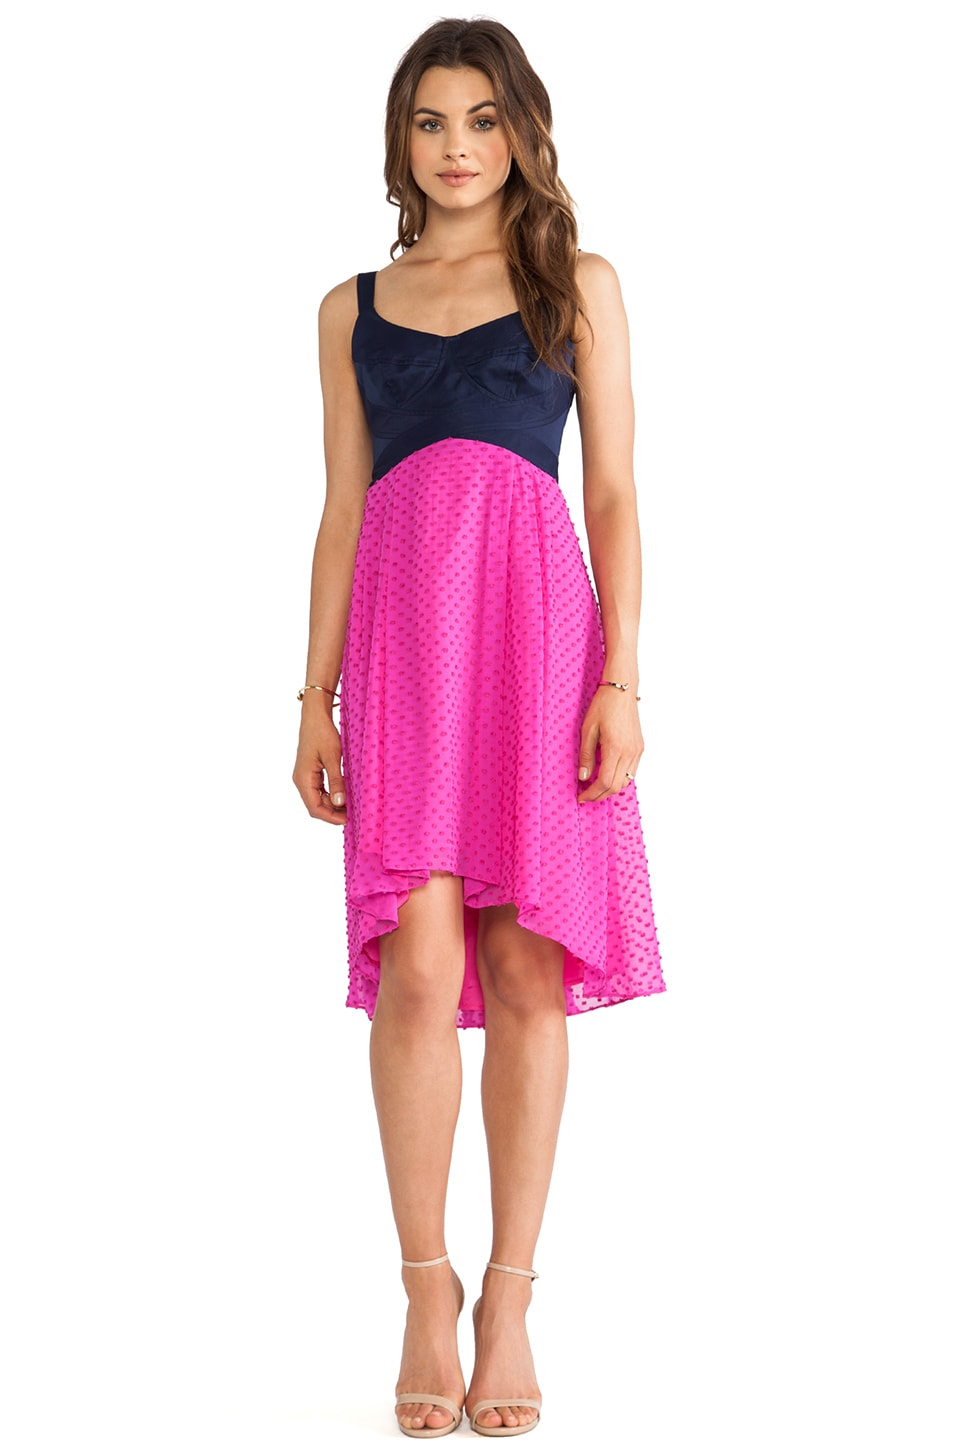 Nanette Lepore Mermaid Dress in Bubblegum & Indigo